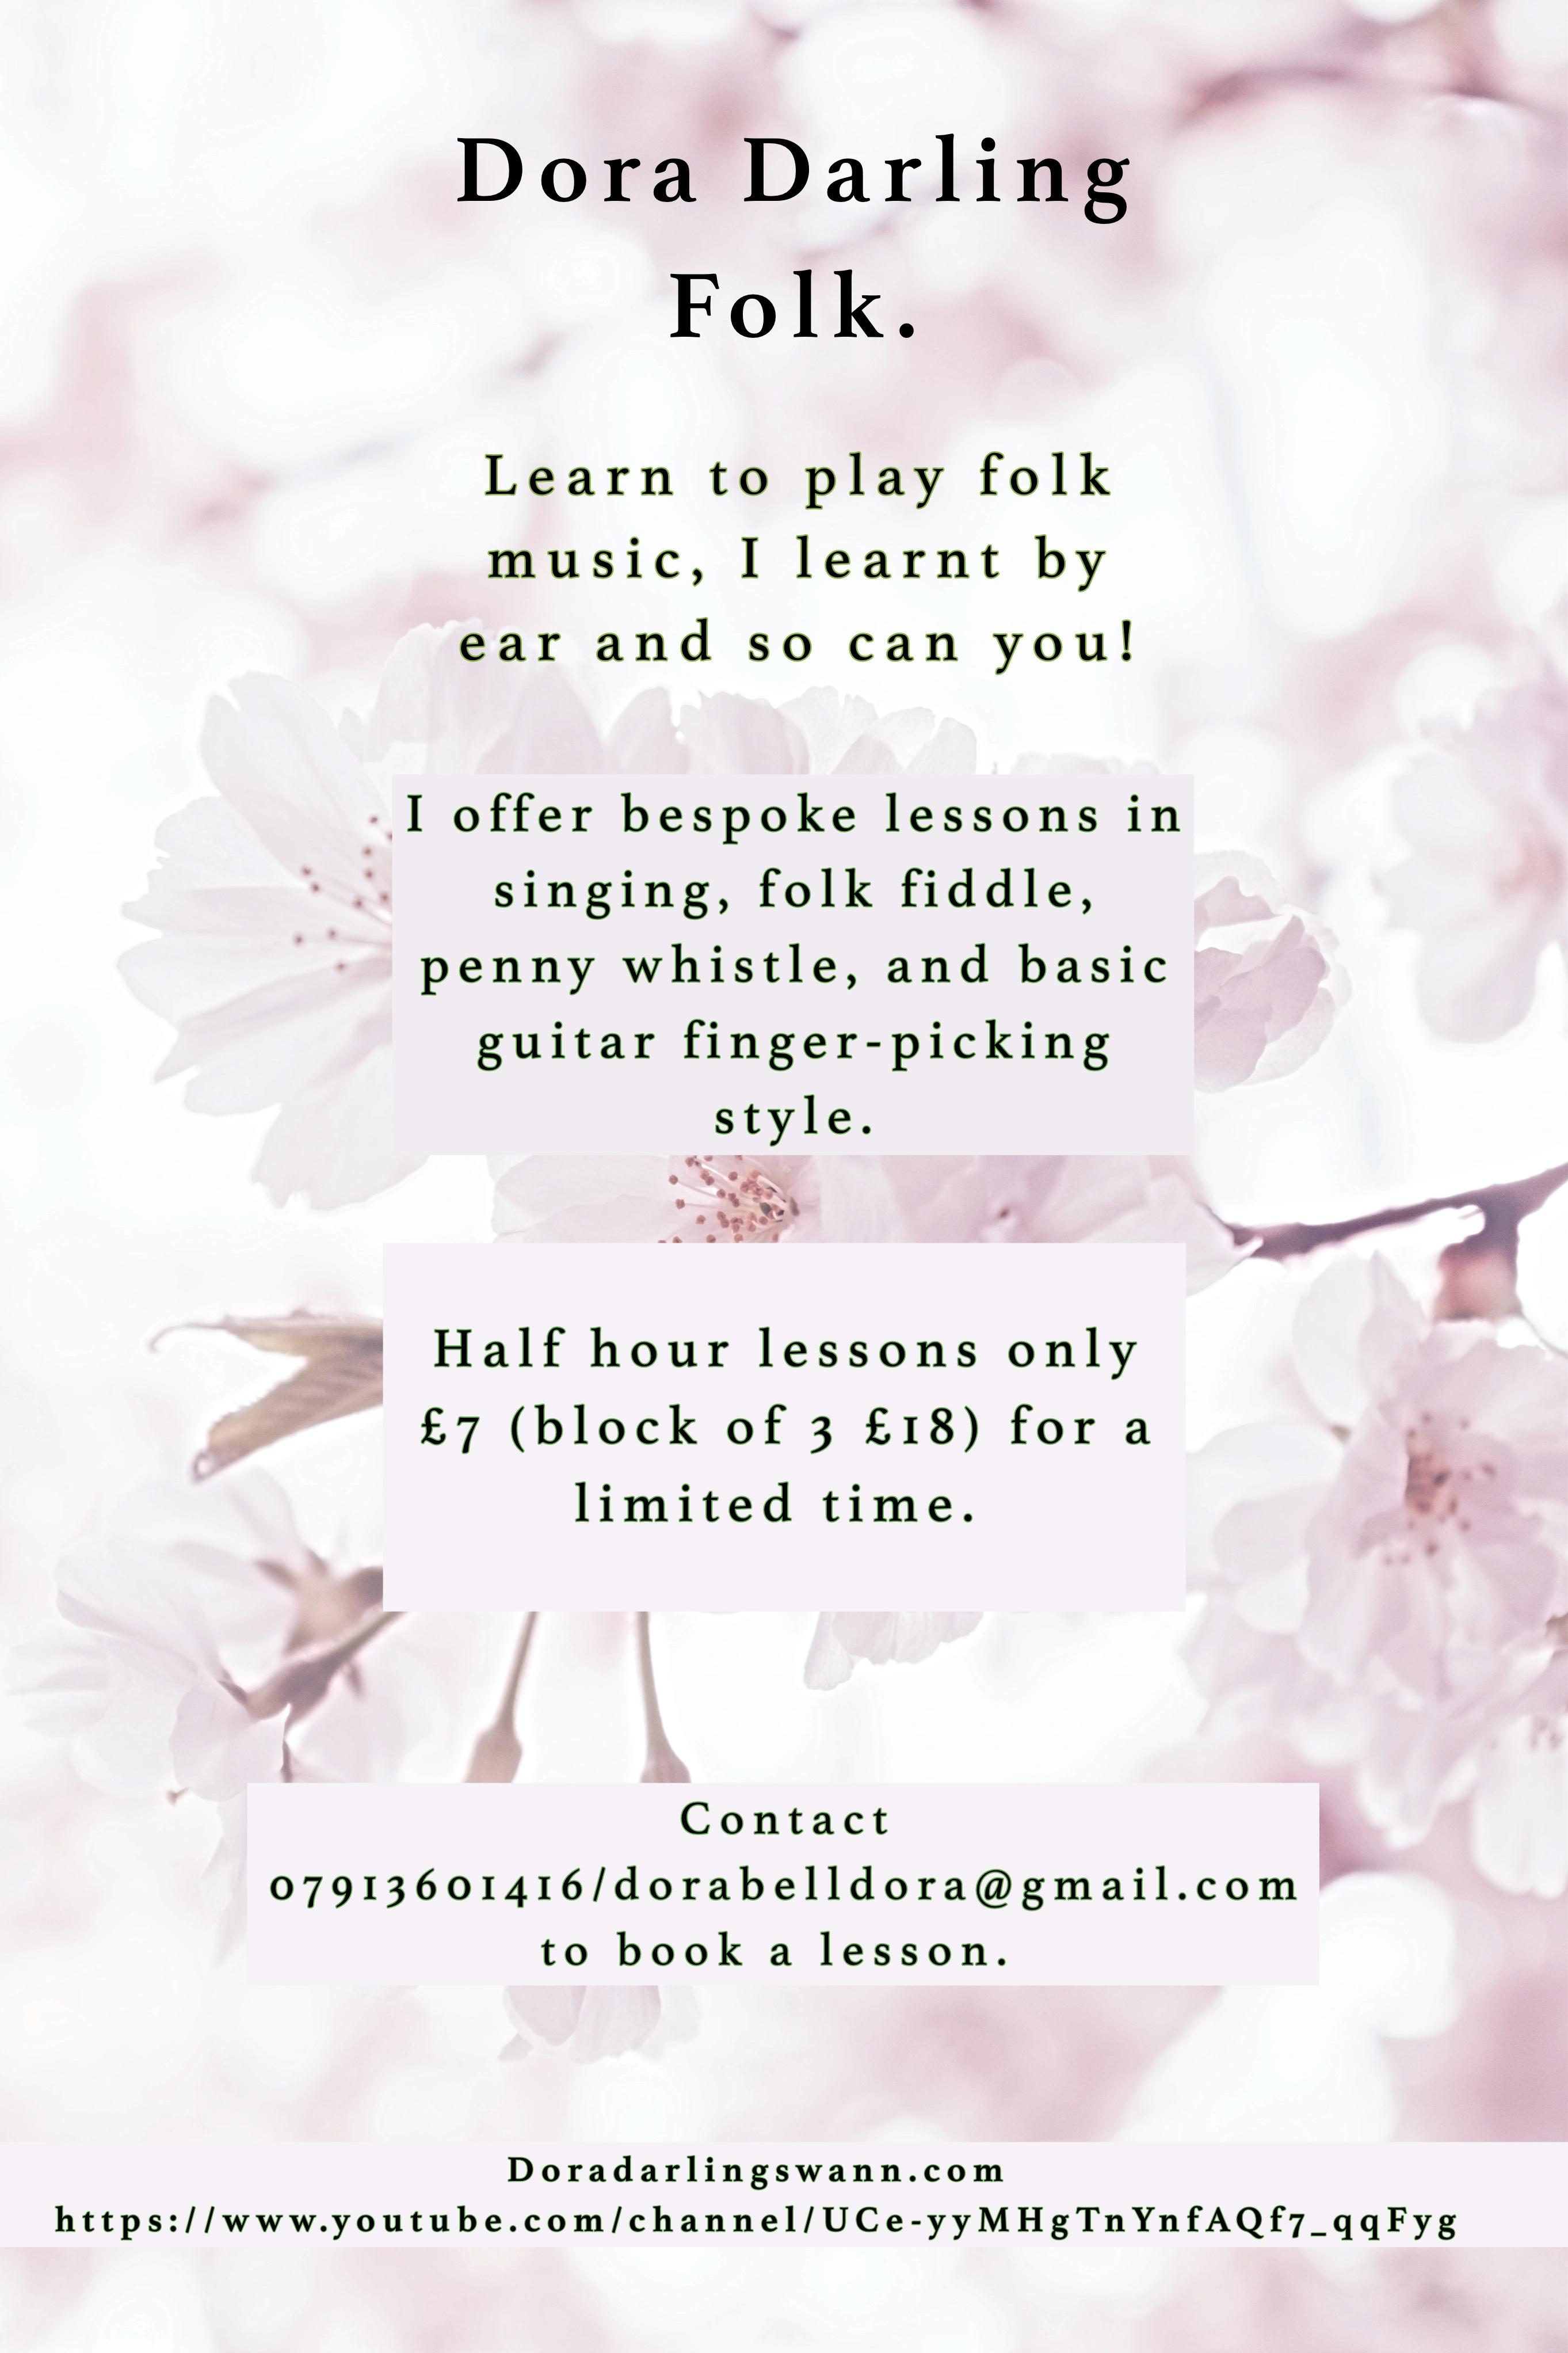 lessons flyer